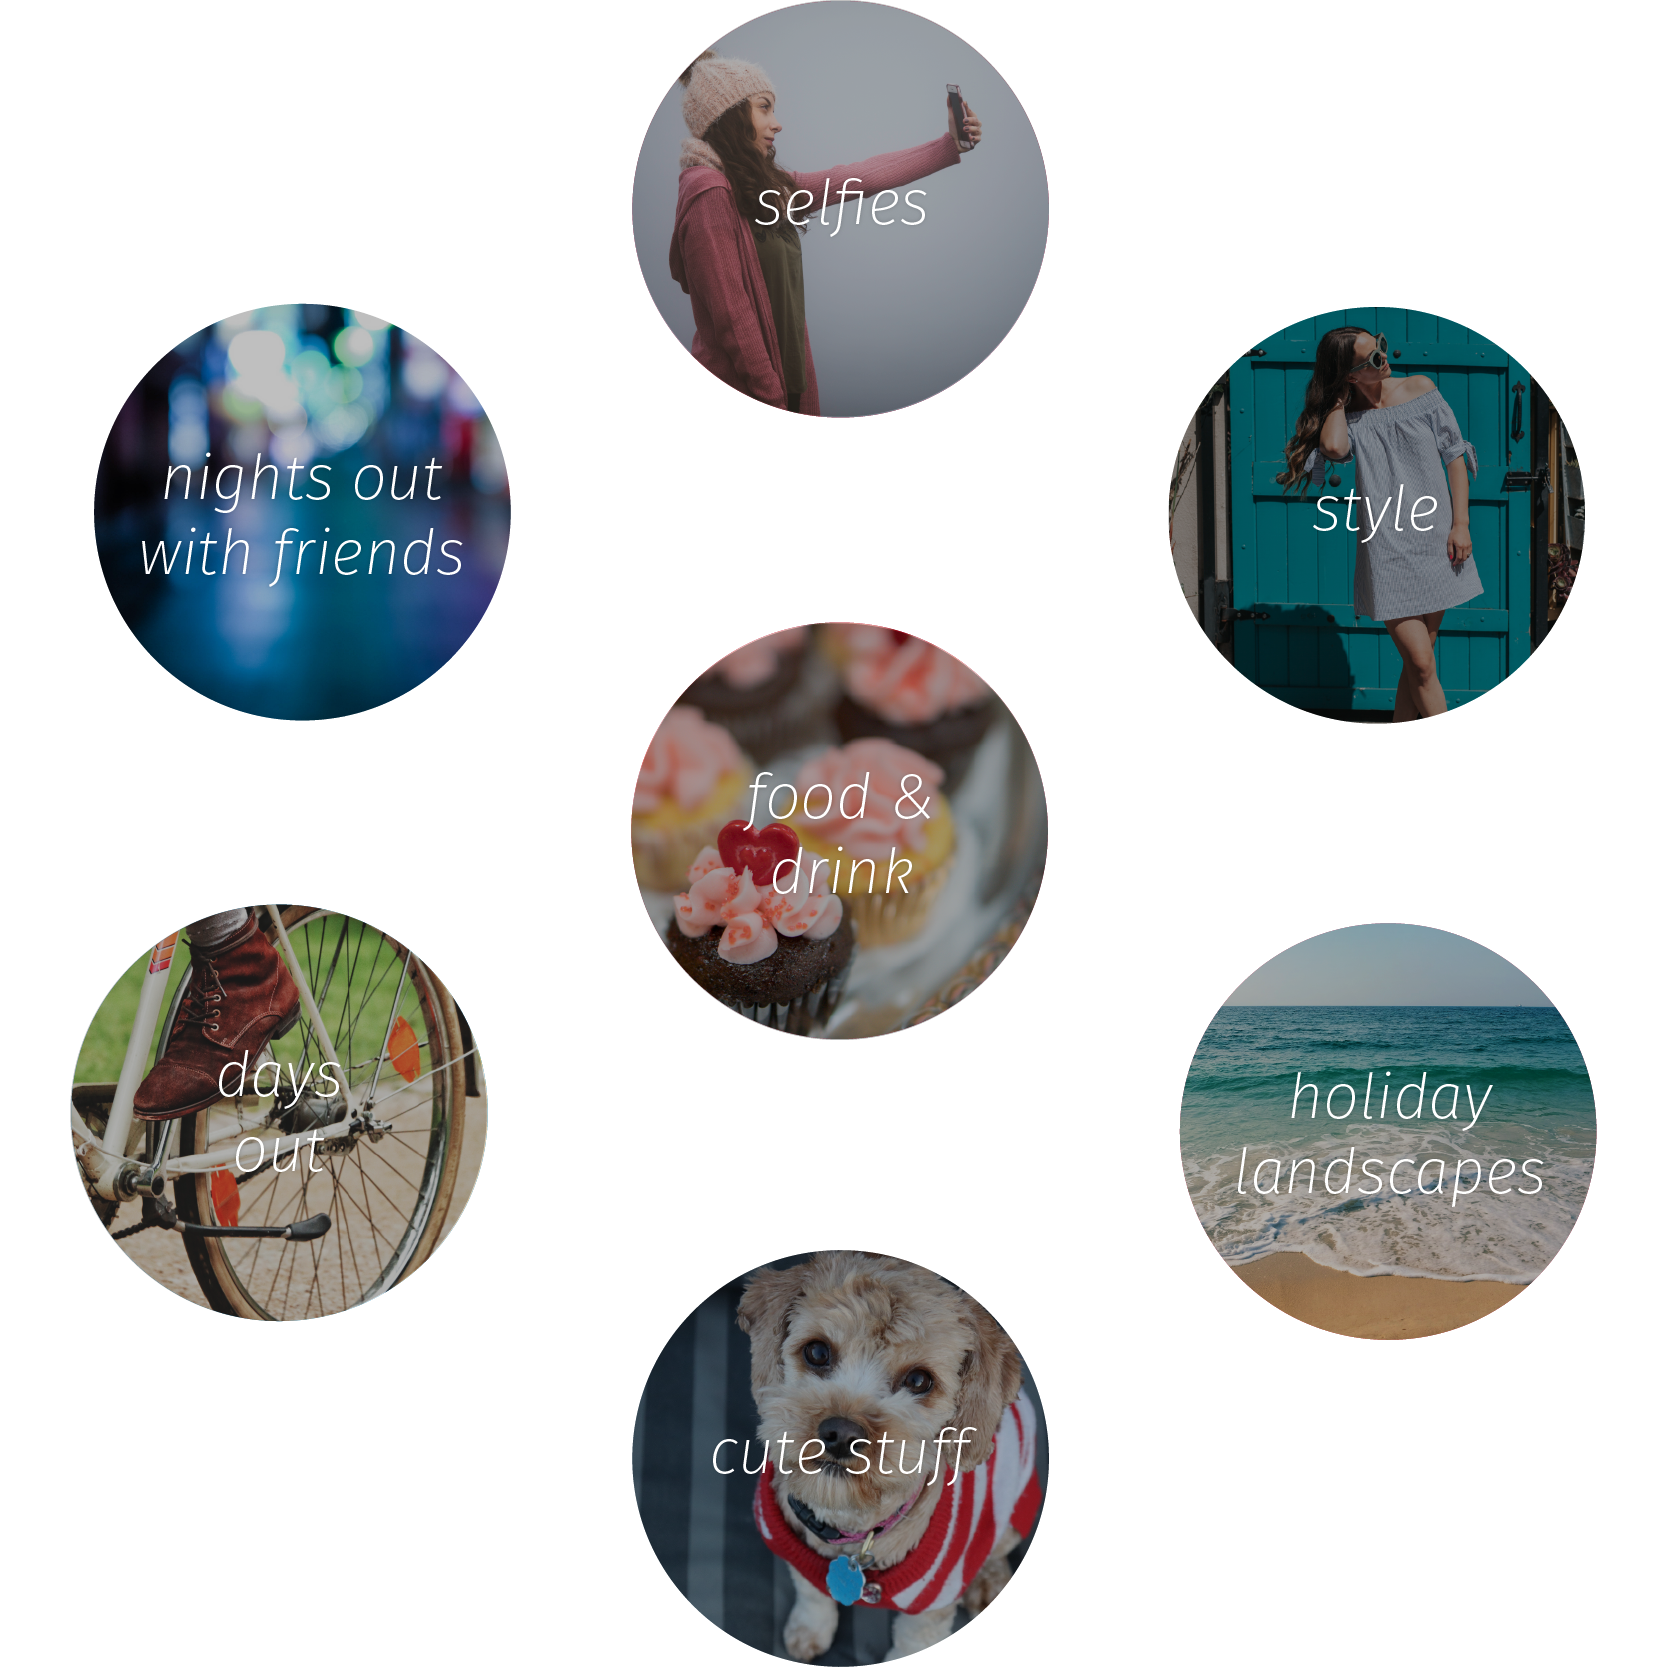 Studied trends - One of the most creative projects I was part of at Nokia was making an app with a set of photo filters. My team and I studied the trends of what people were sharing most around the world.